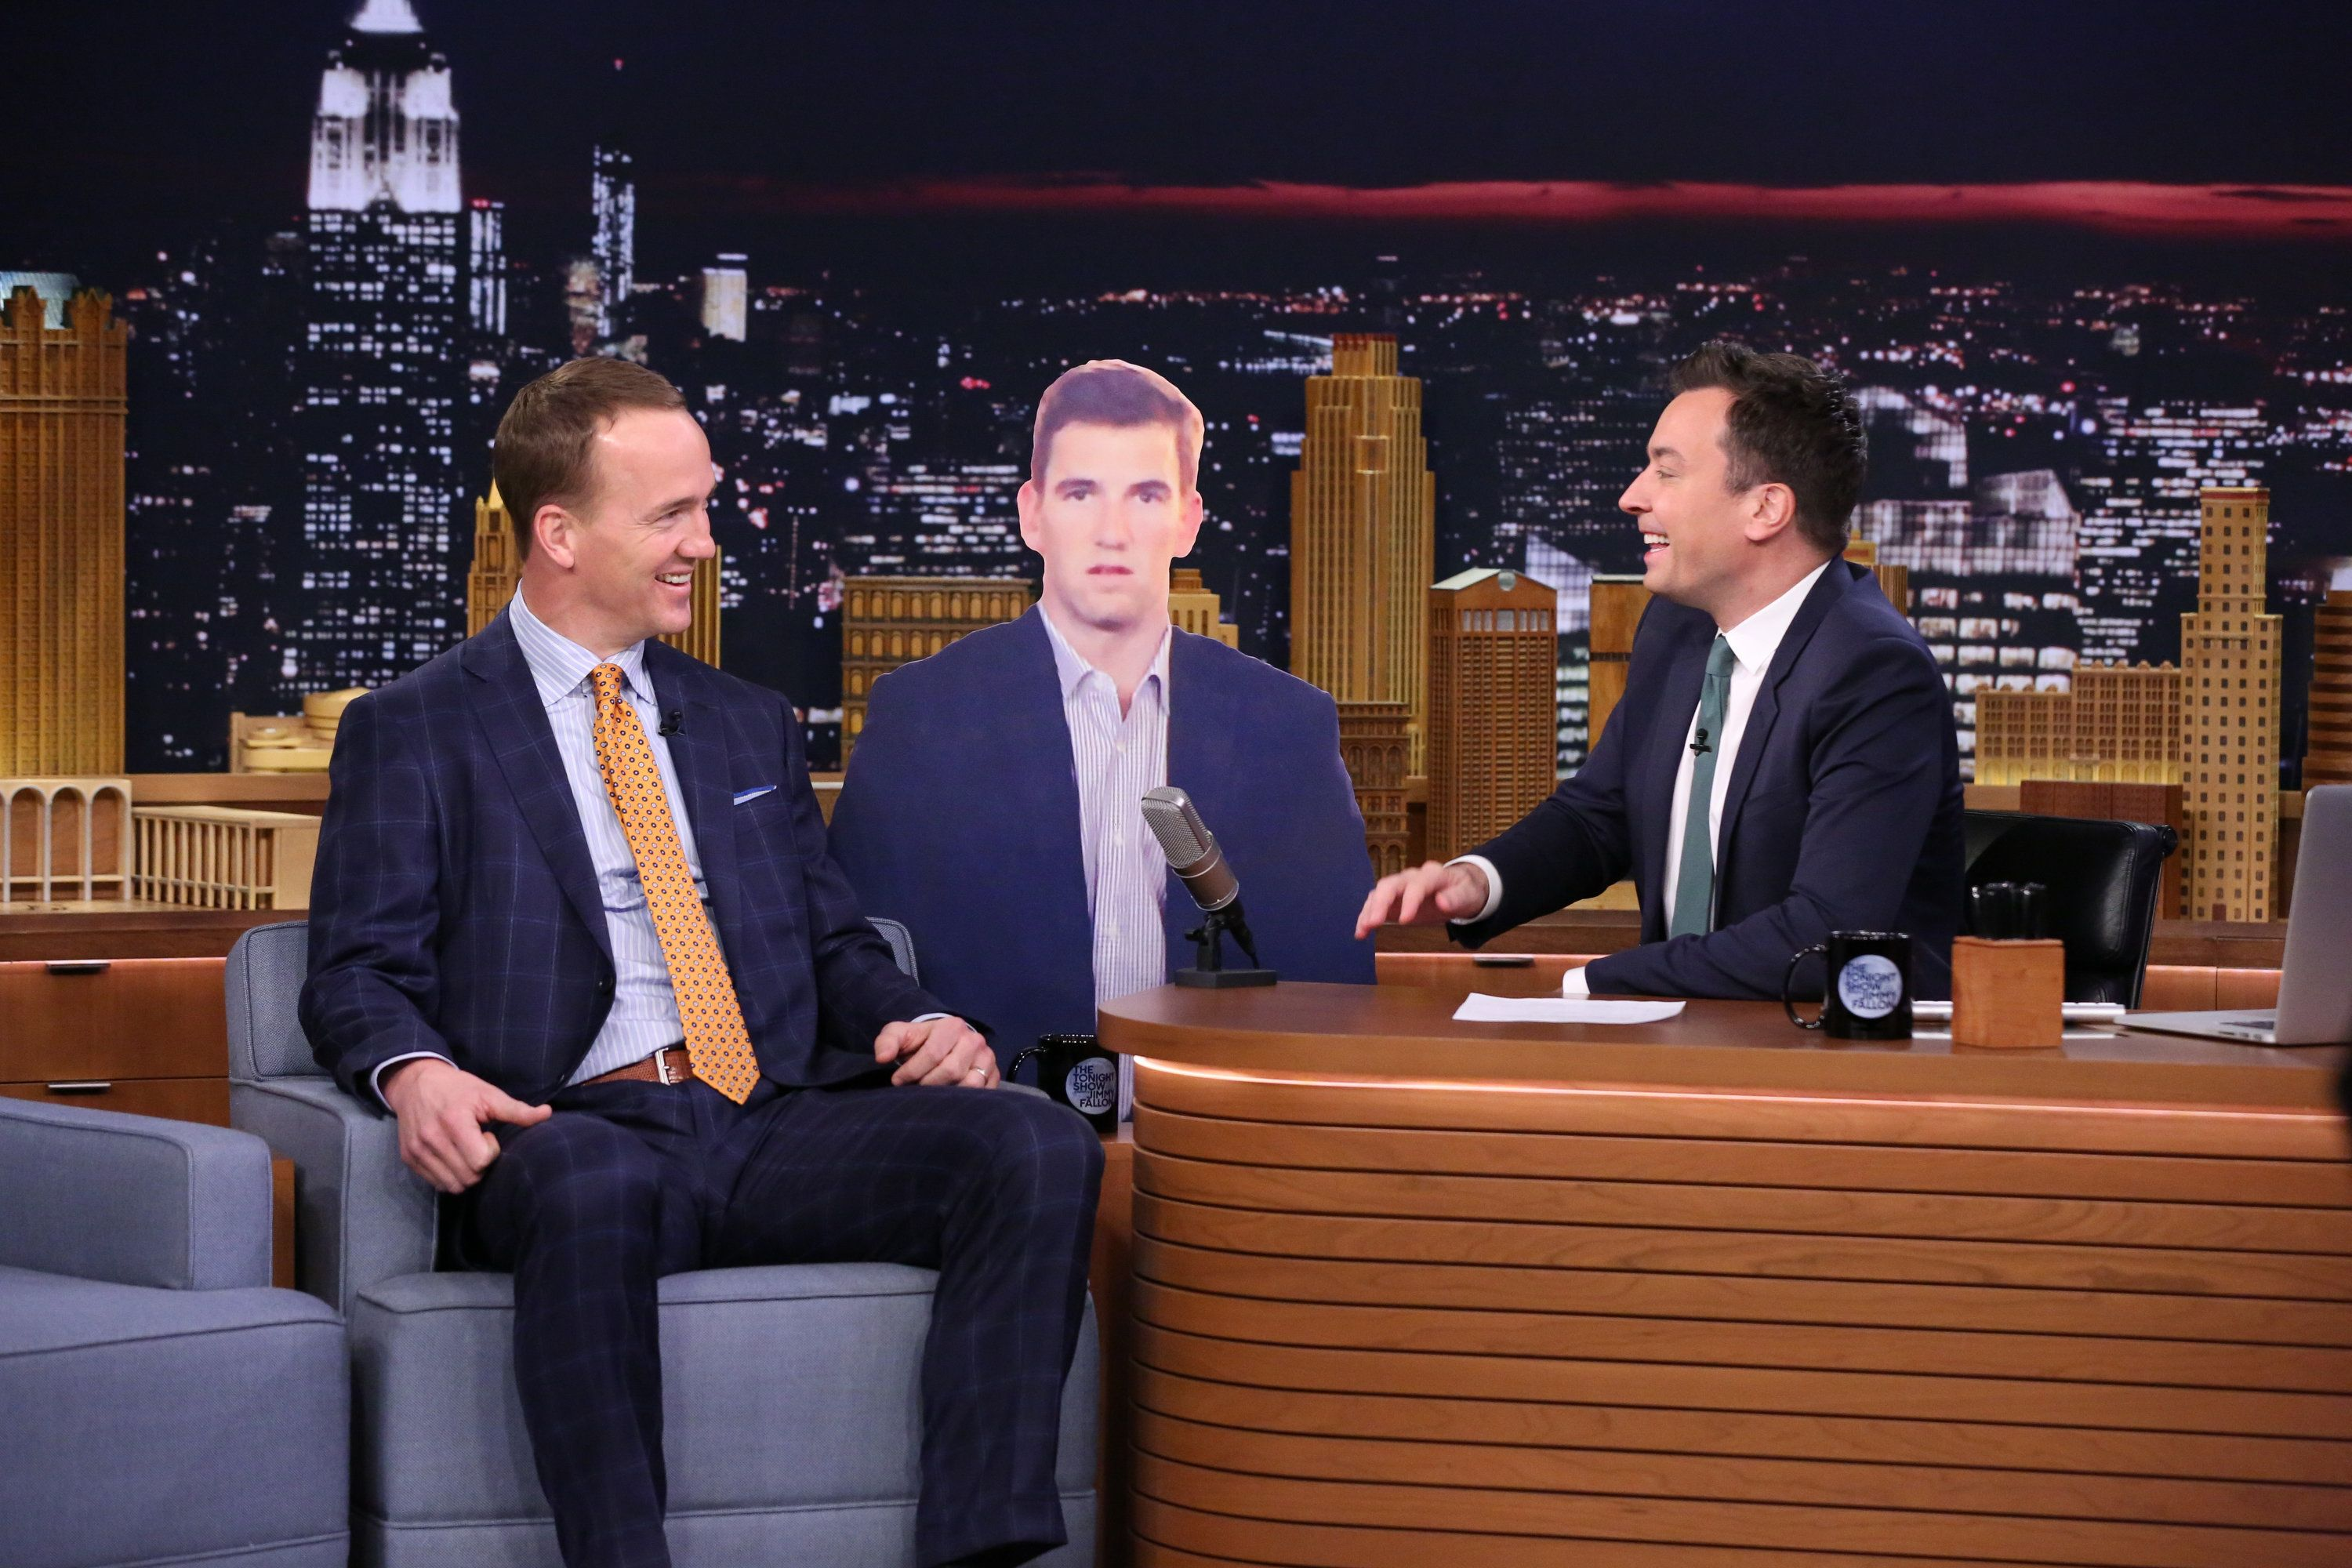 THE TONIGHT SHOW STARRING JIMMY FALLON -- Episode 0415 -- Pictured: (l-r) Football quarterback Peyton Manning during an interview with host Jimmy Fallon on February 10, 2016 -- (Photo by: Andrew Lipovsky/NBC/NBCU Photo Bank via Getty Images)